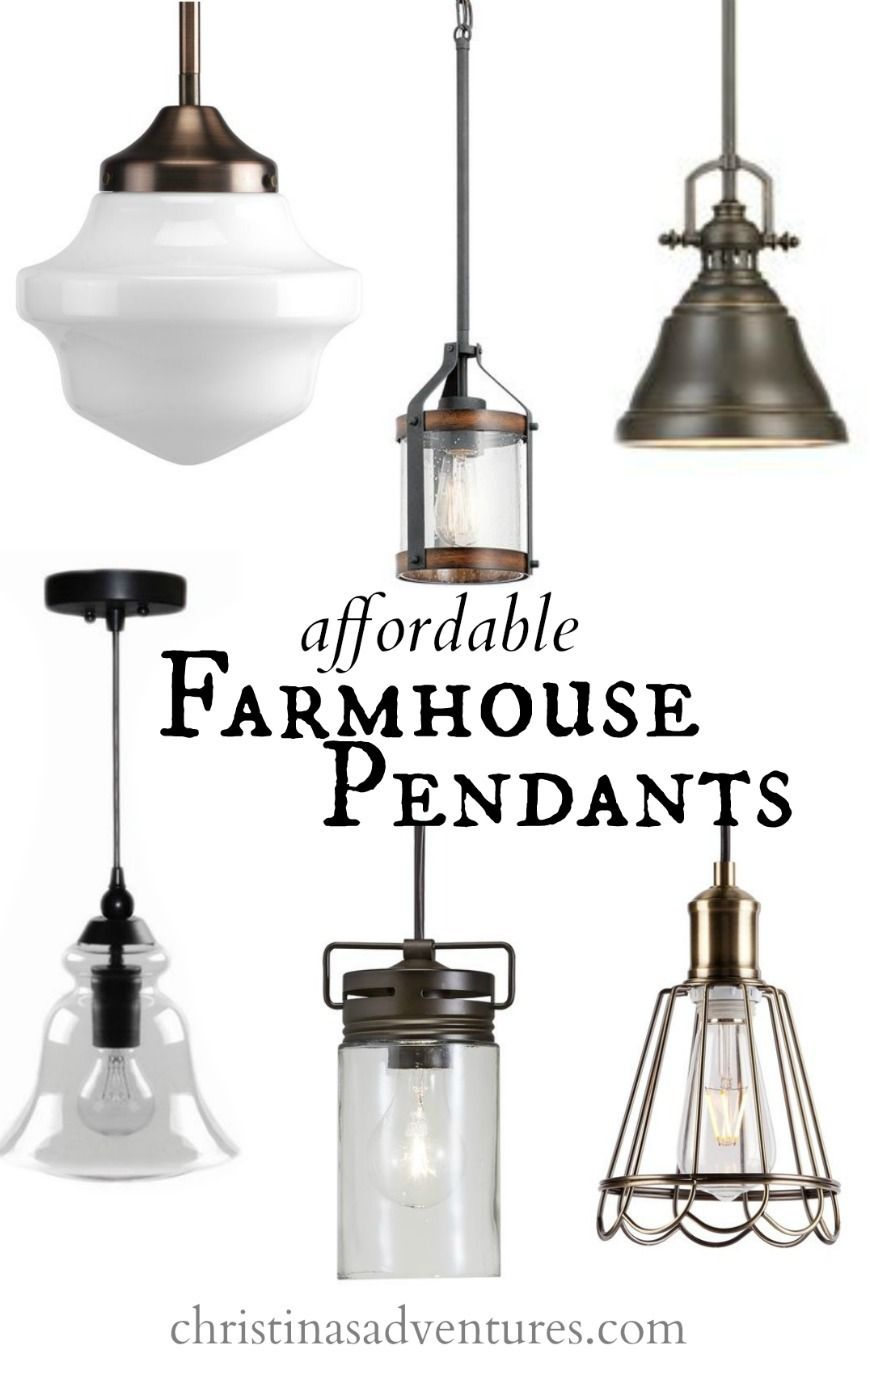 Lighting Is An Easy Inexpensive Way To Transform The Style And Ambiance Of A E Click These Farmhouse Pendant Lights Start Your